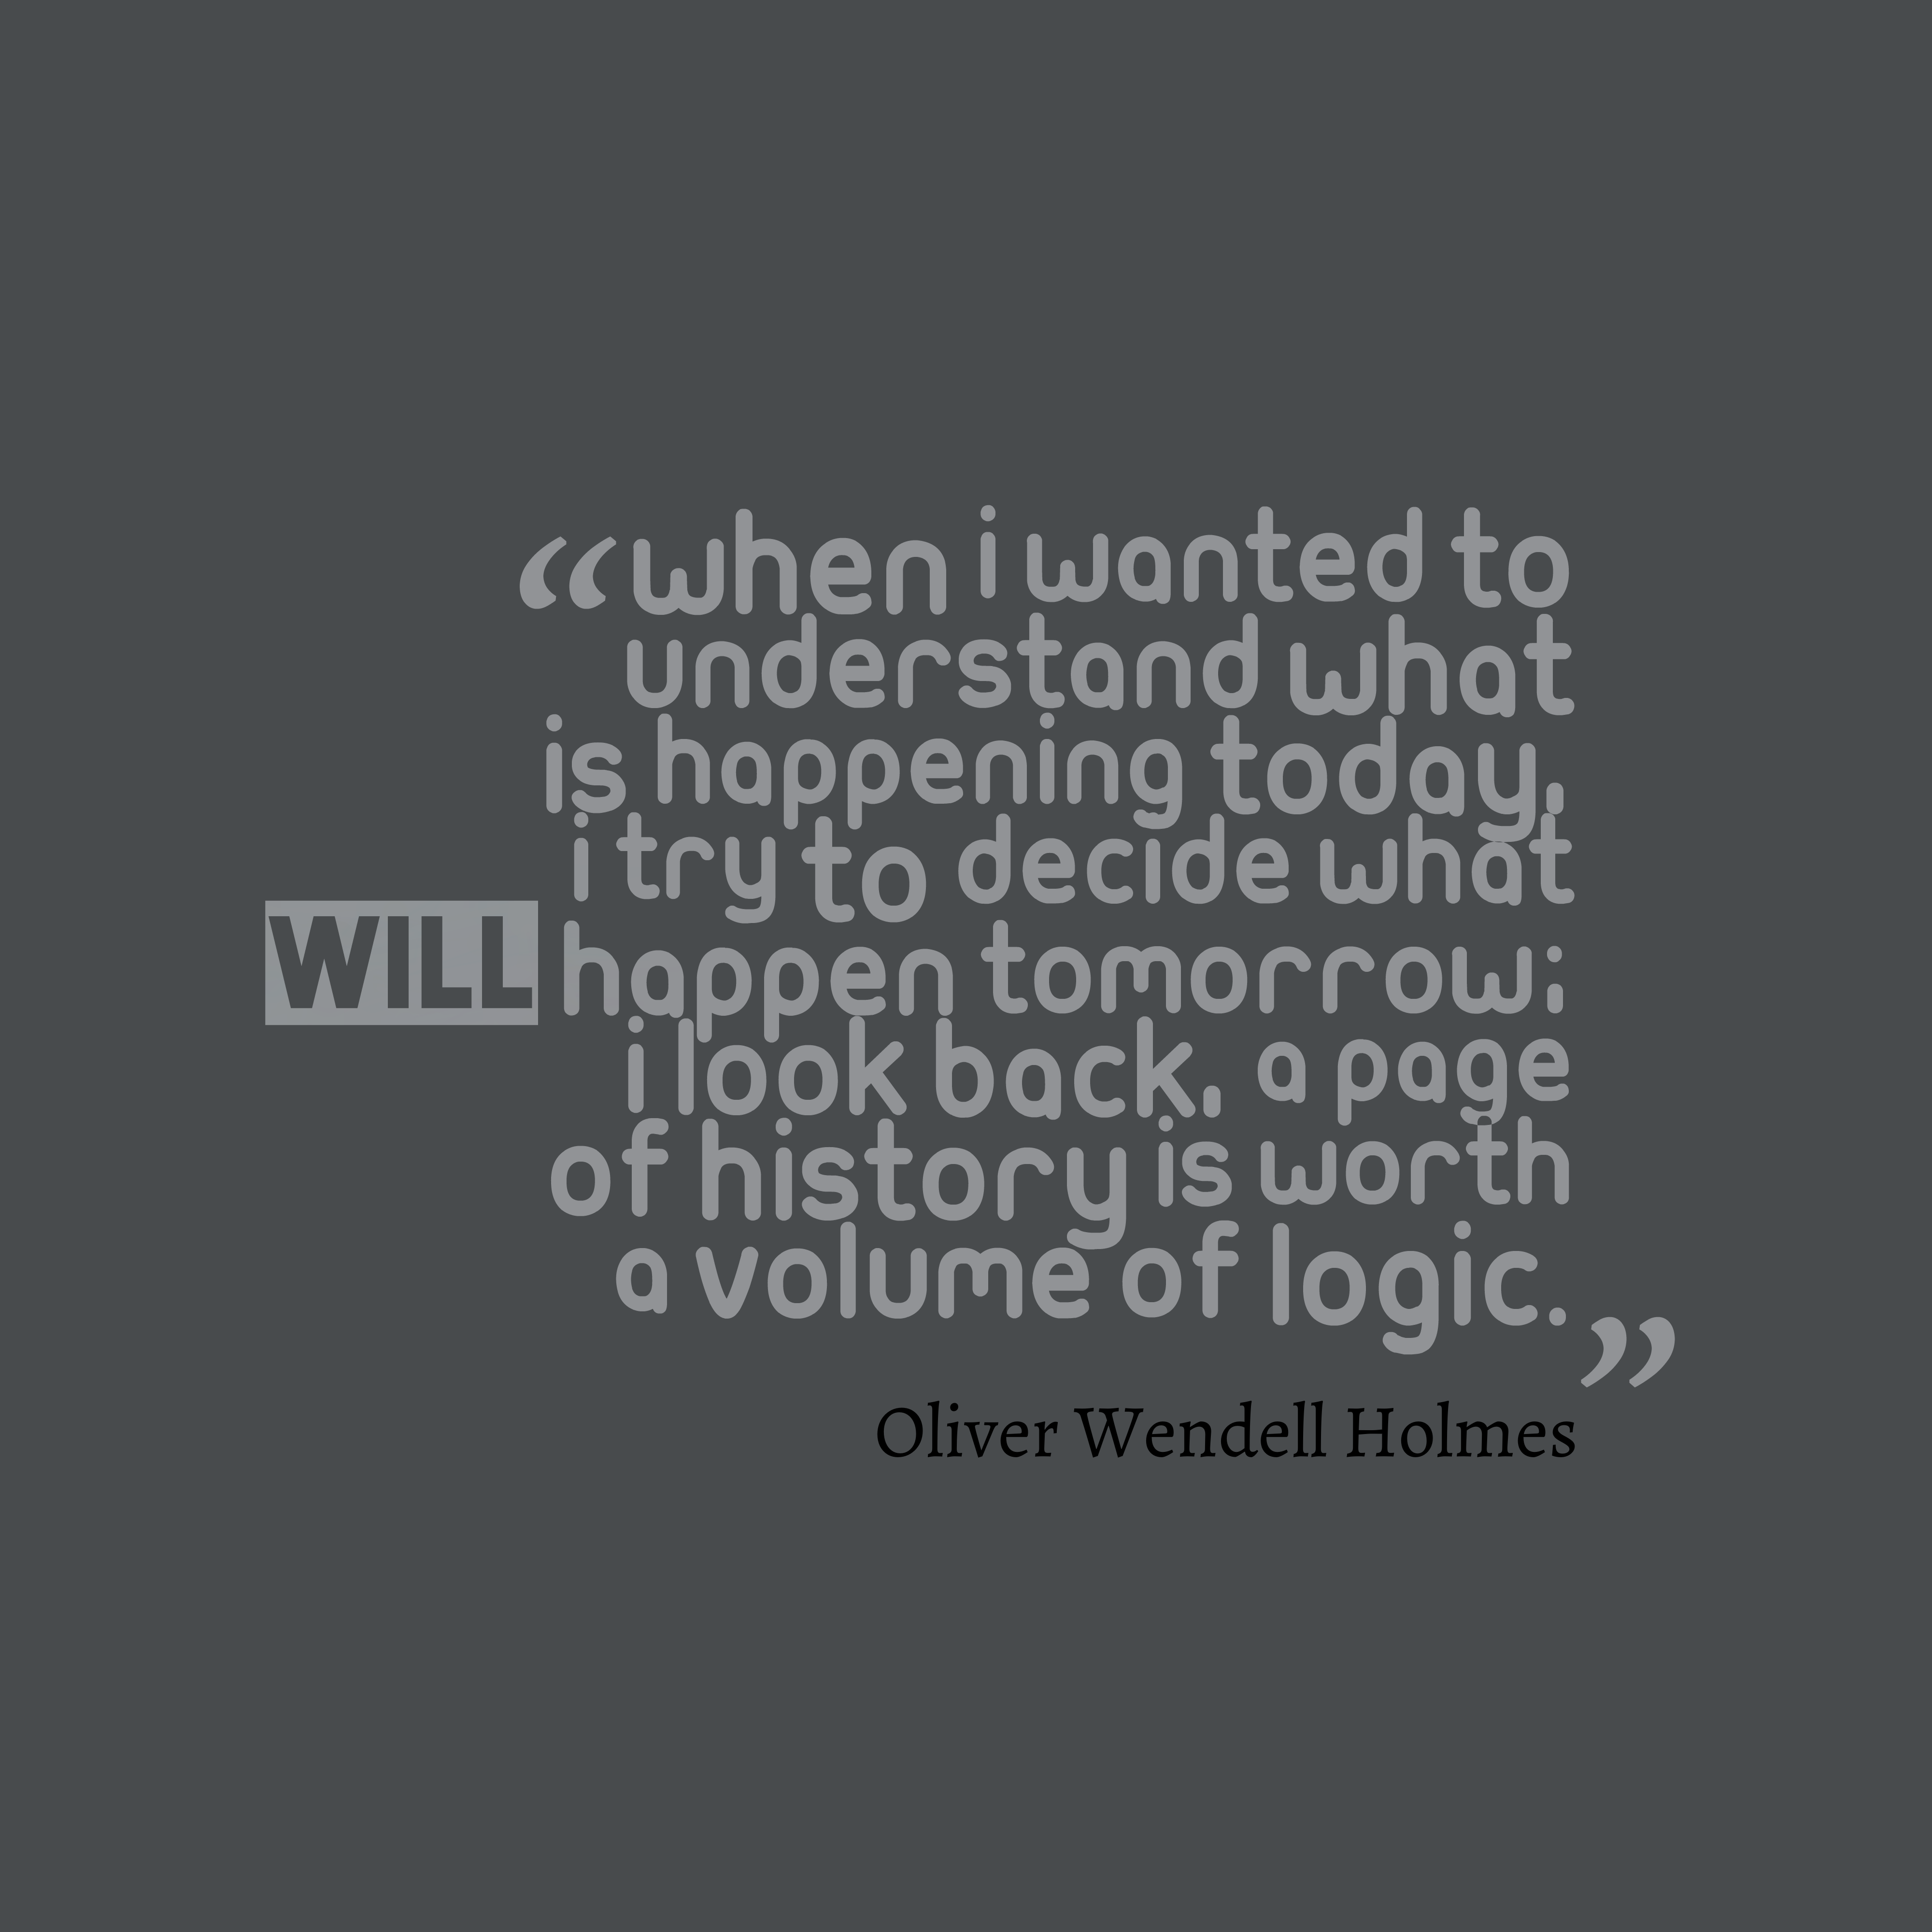 Logic Quotes Picture Oliver Wendell Holmes Quote About History Quotescover